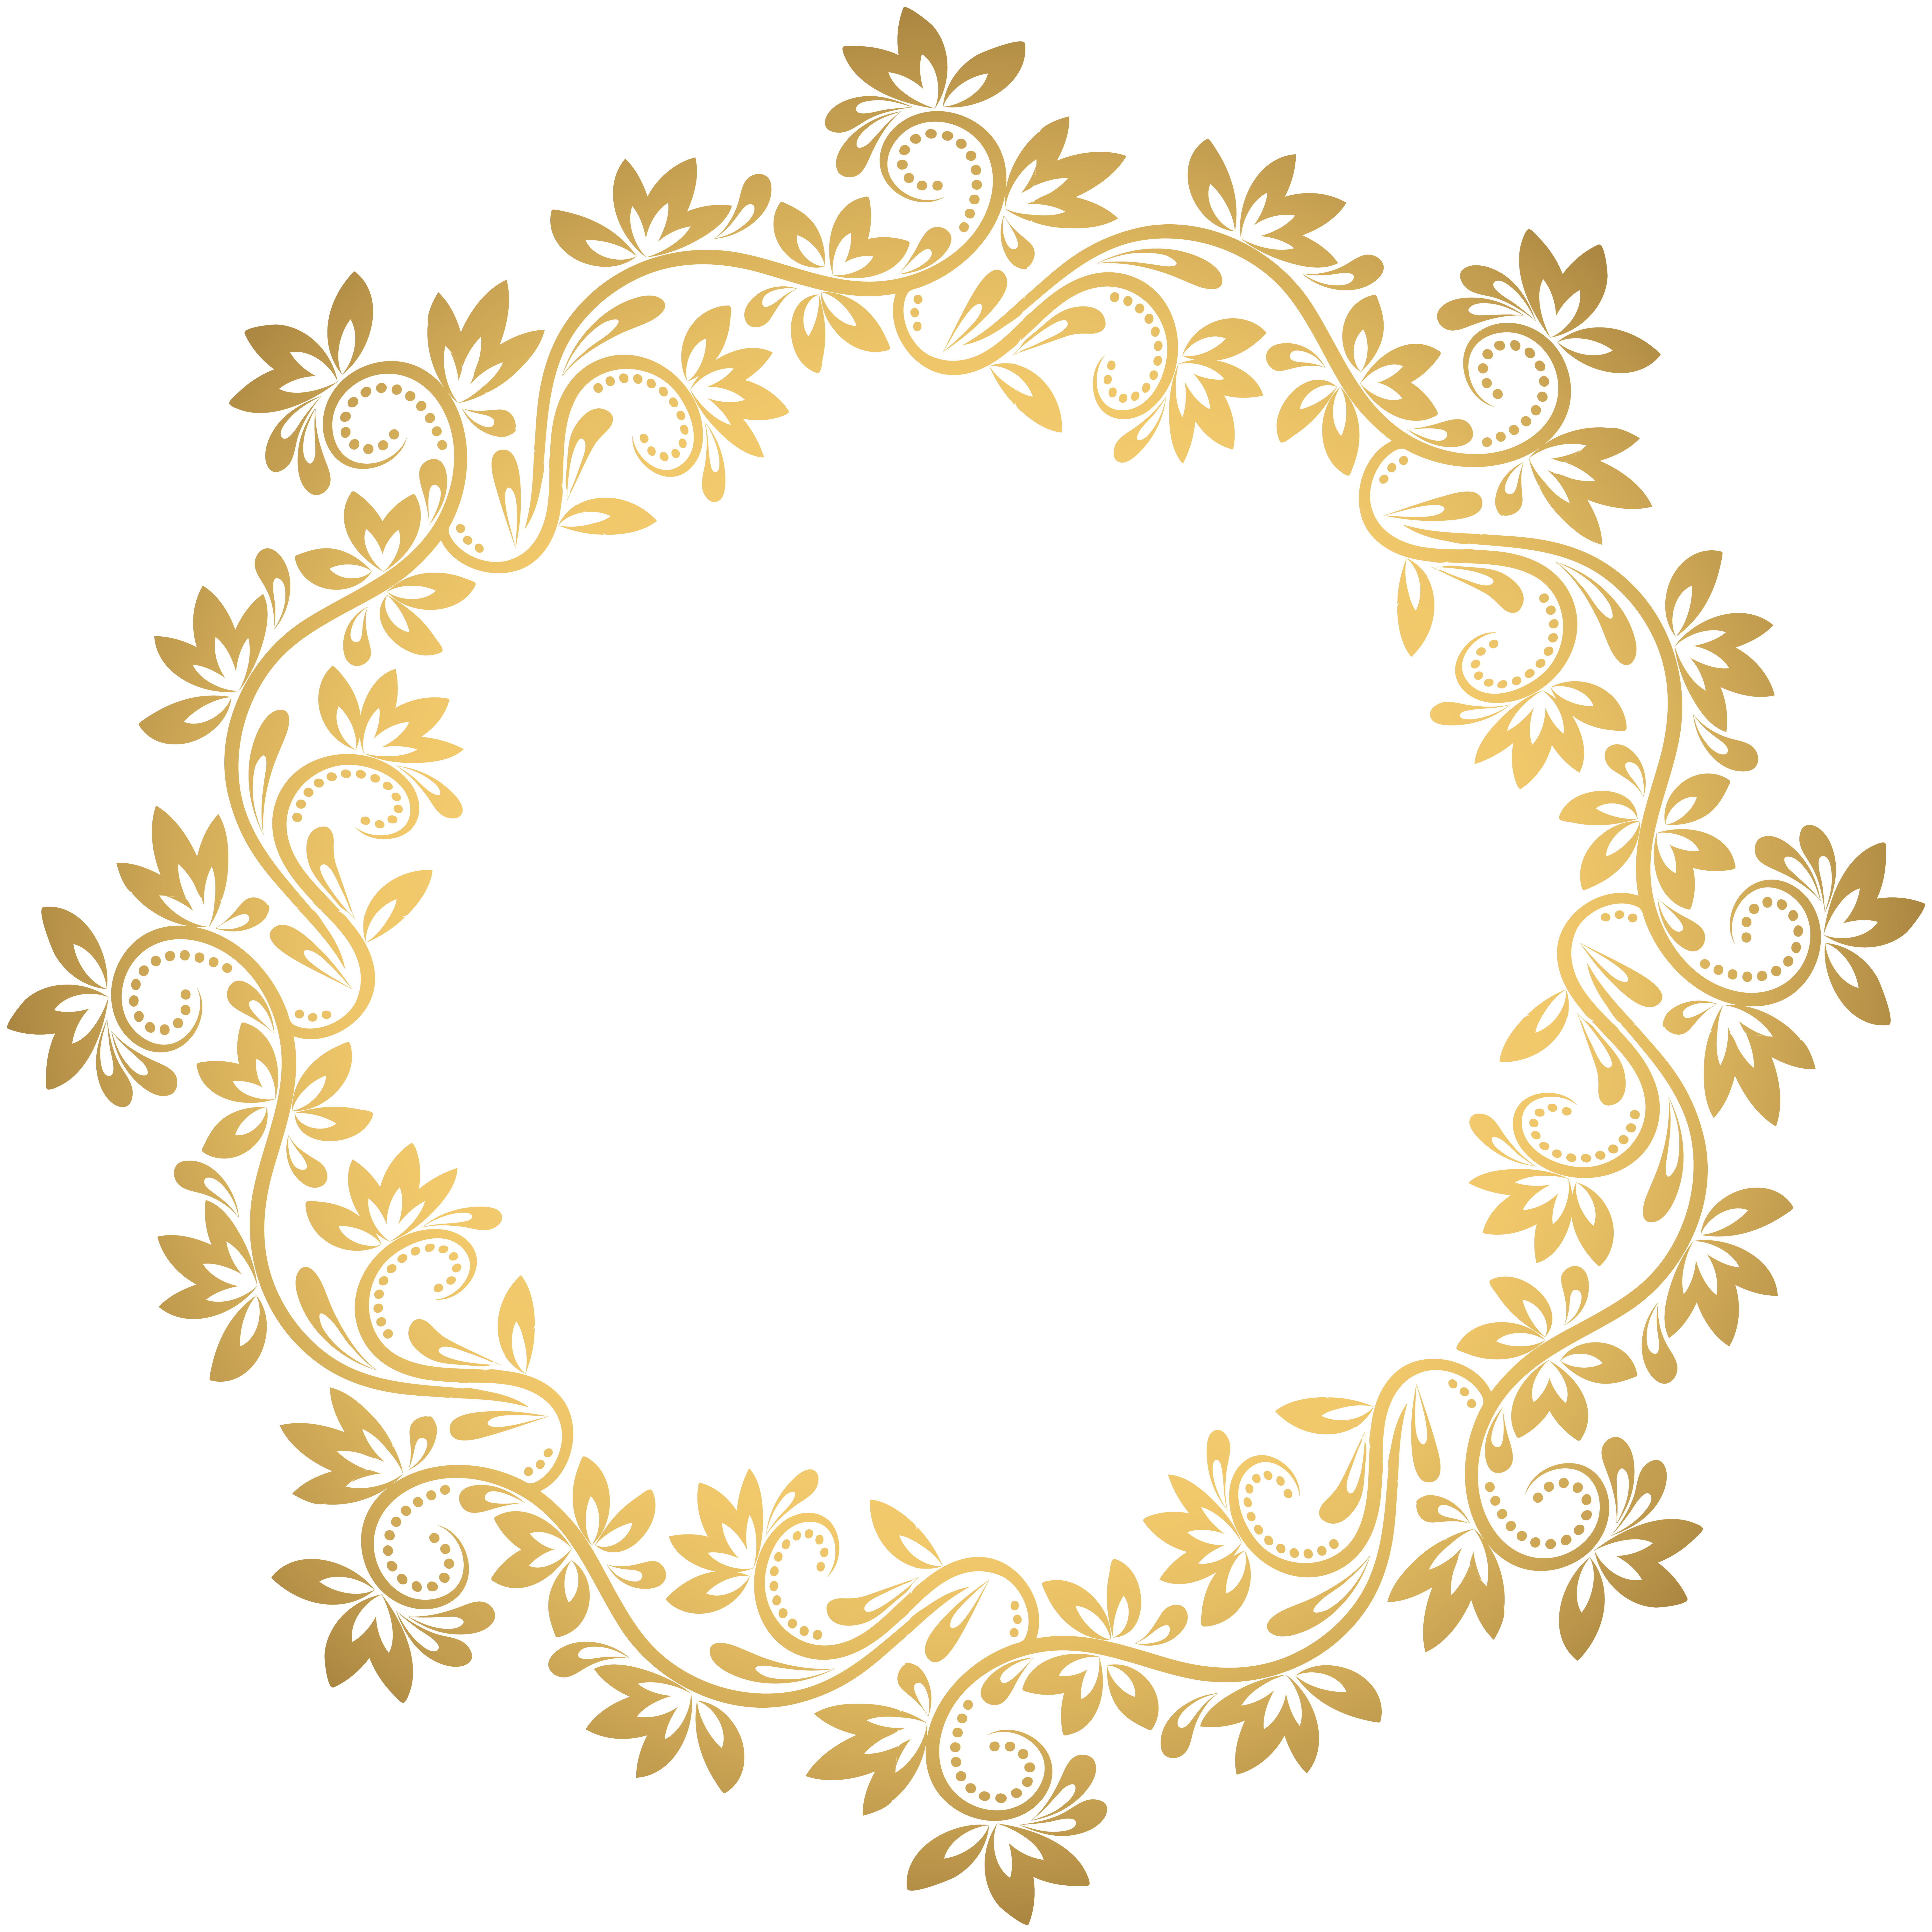 8000x8000 Gold Deco Round Border Png Transparent Clip Artu200b Gallery